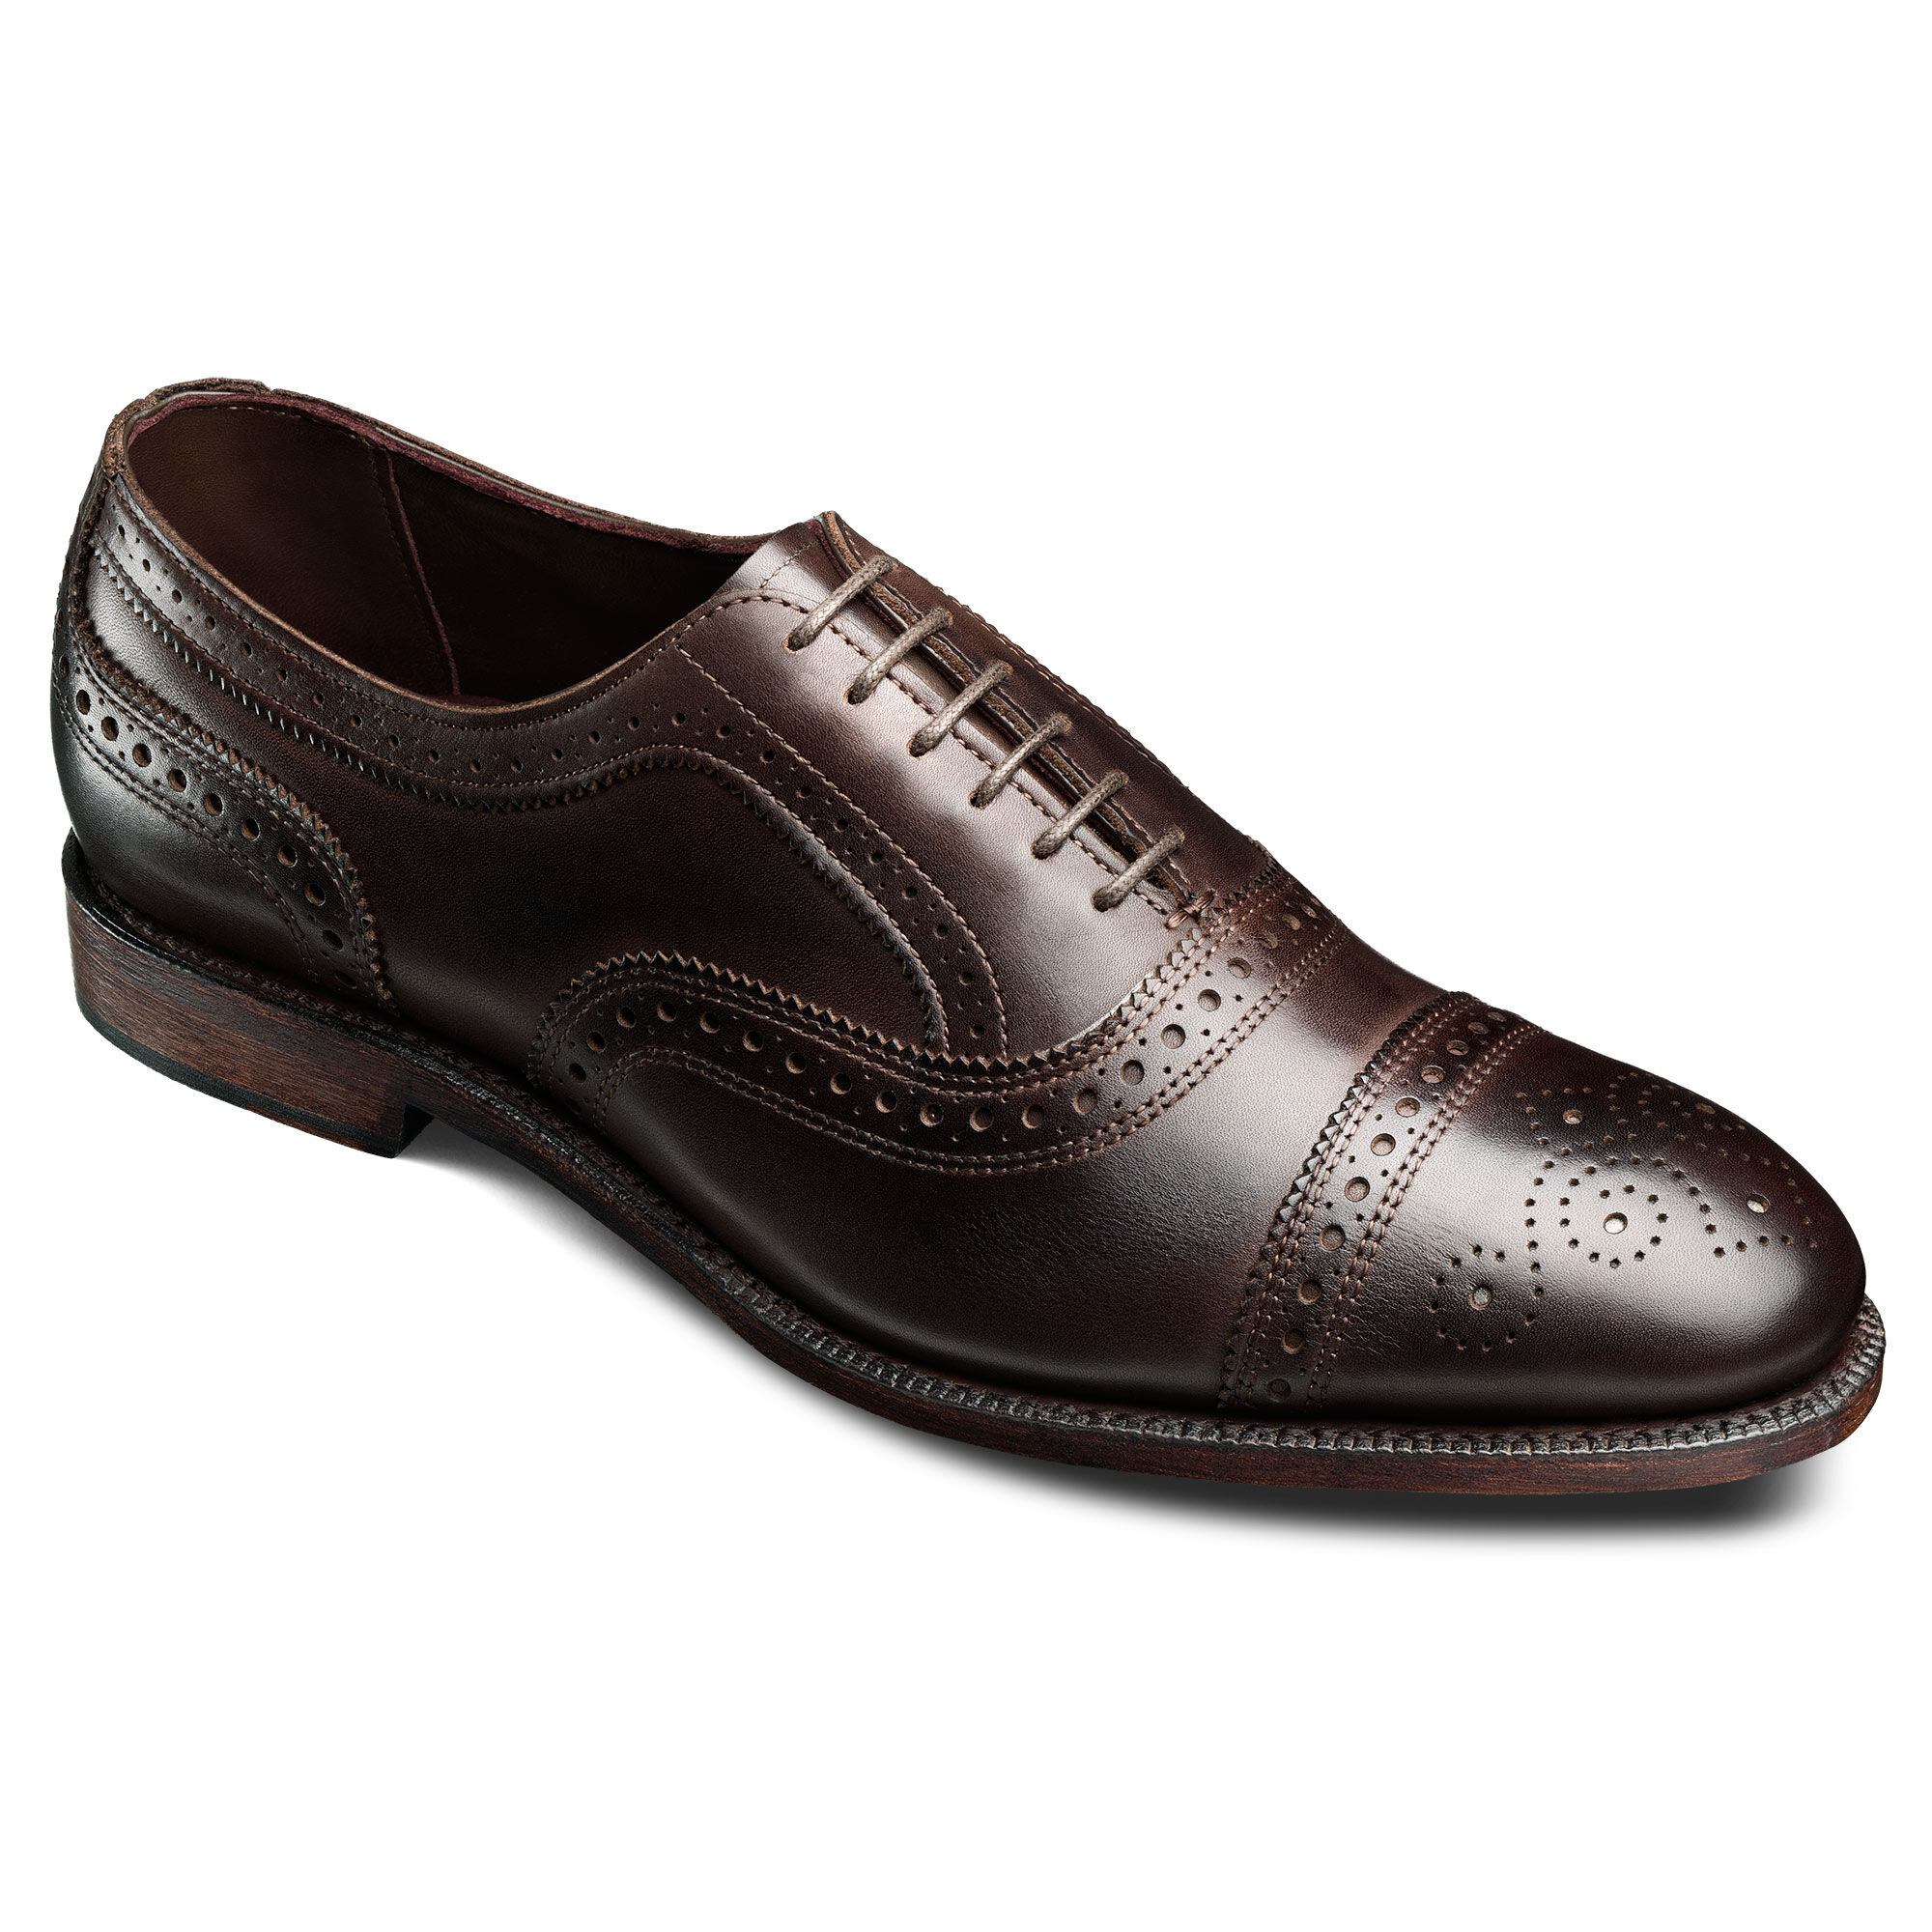 allenedmonds_shoes_bartlett_7643_brown.jpg